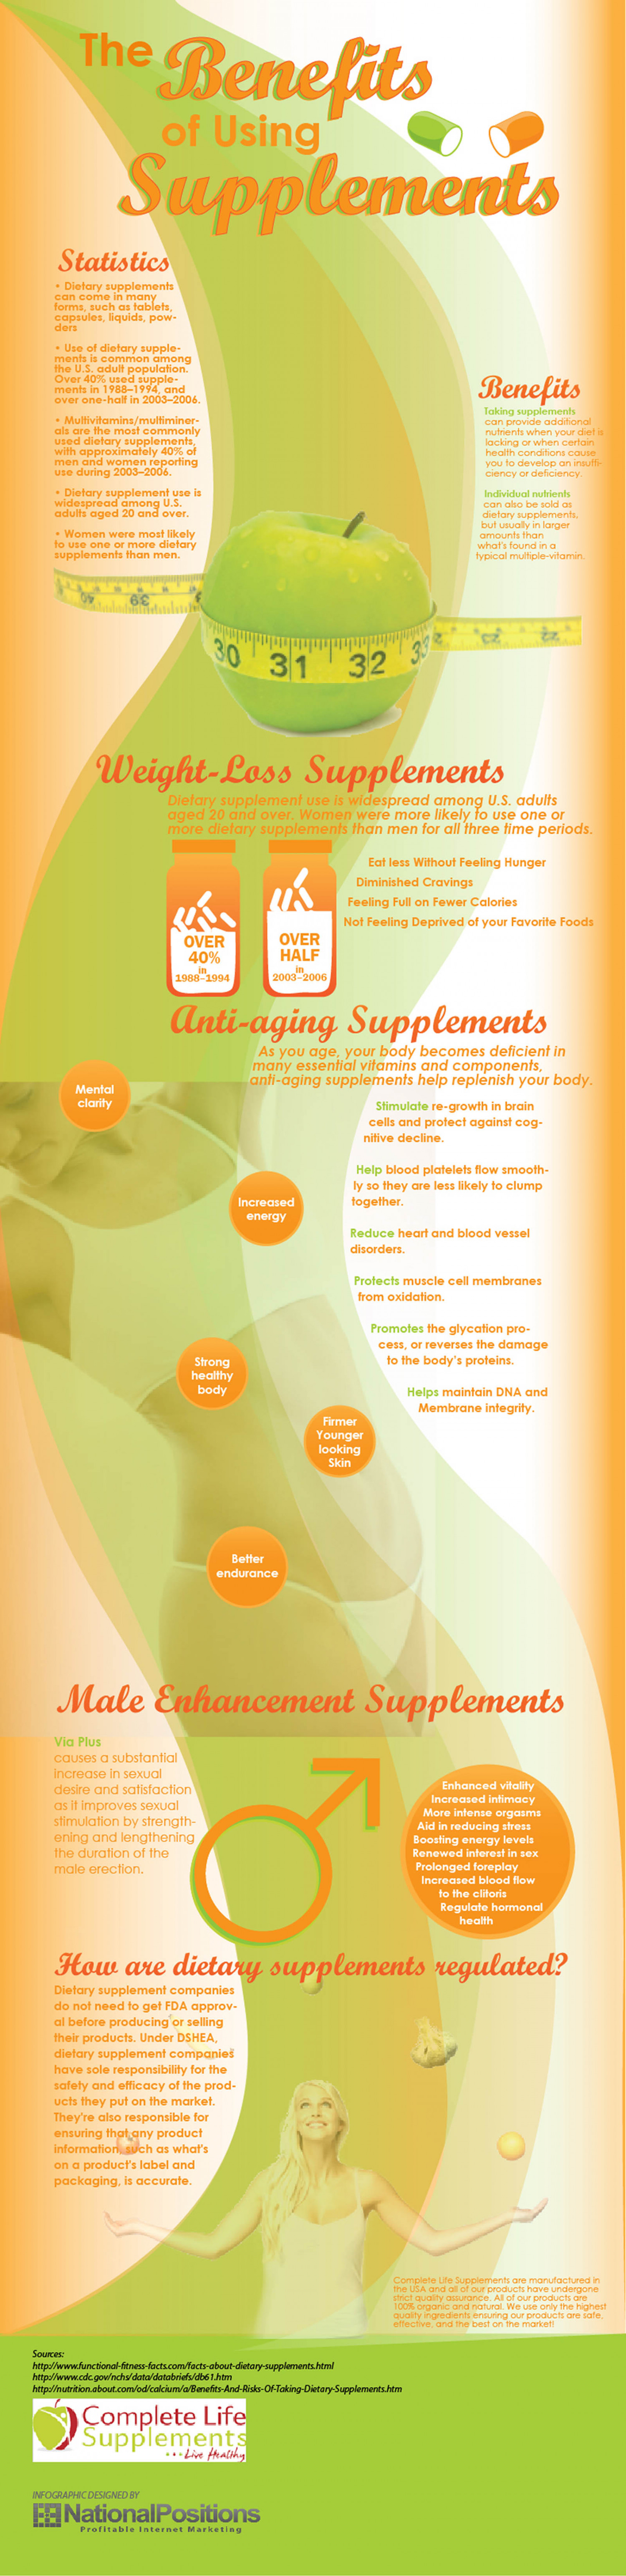 The Benefits of Using Supplements Infographic